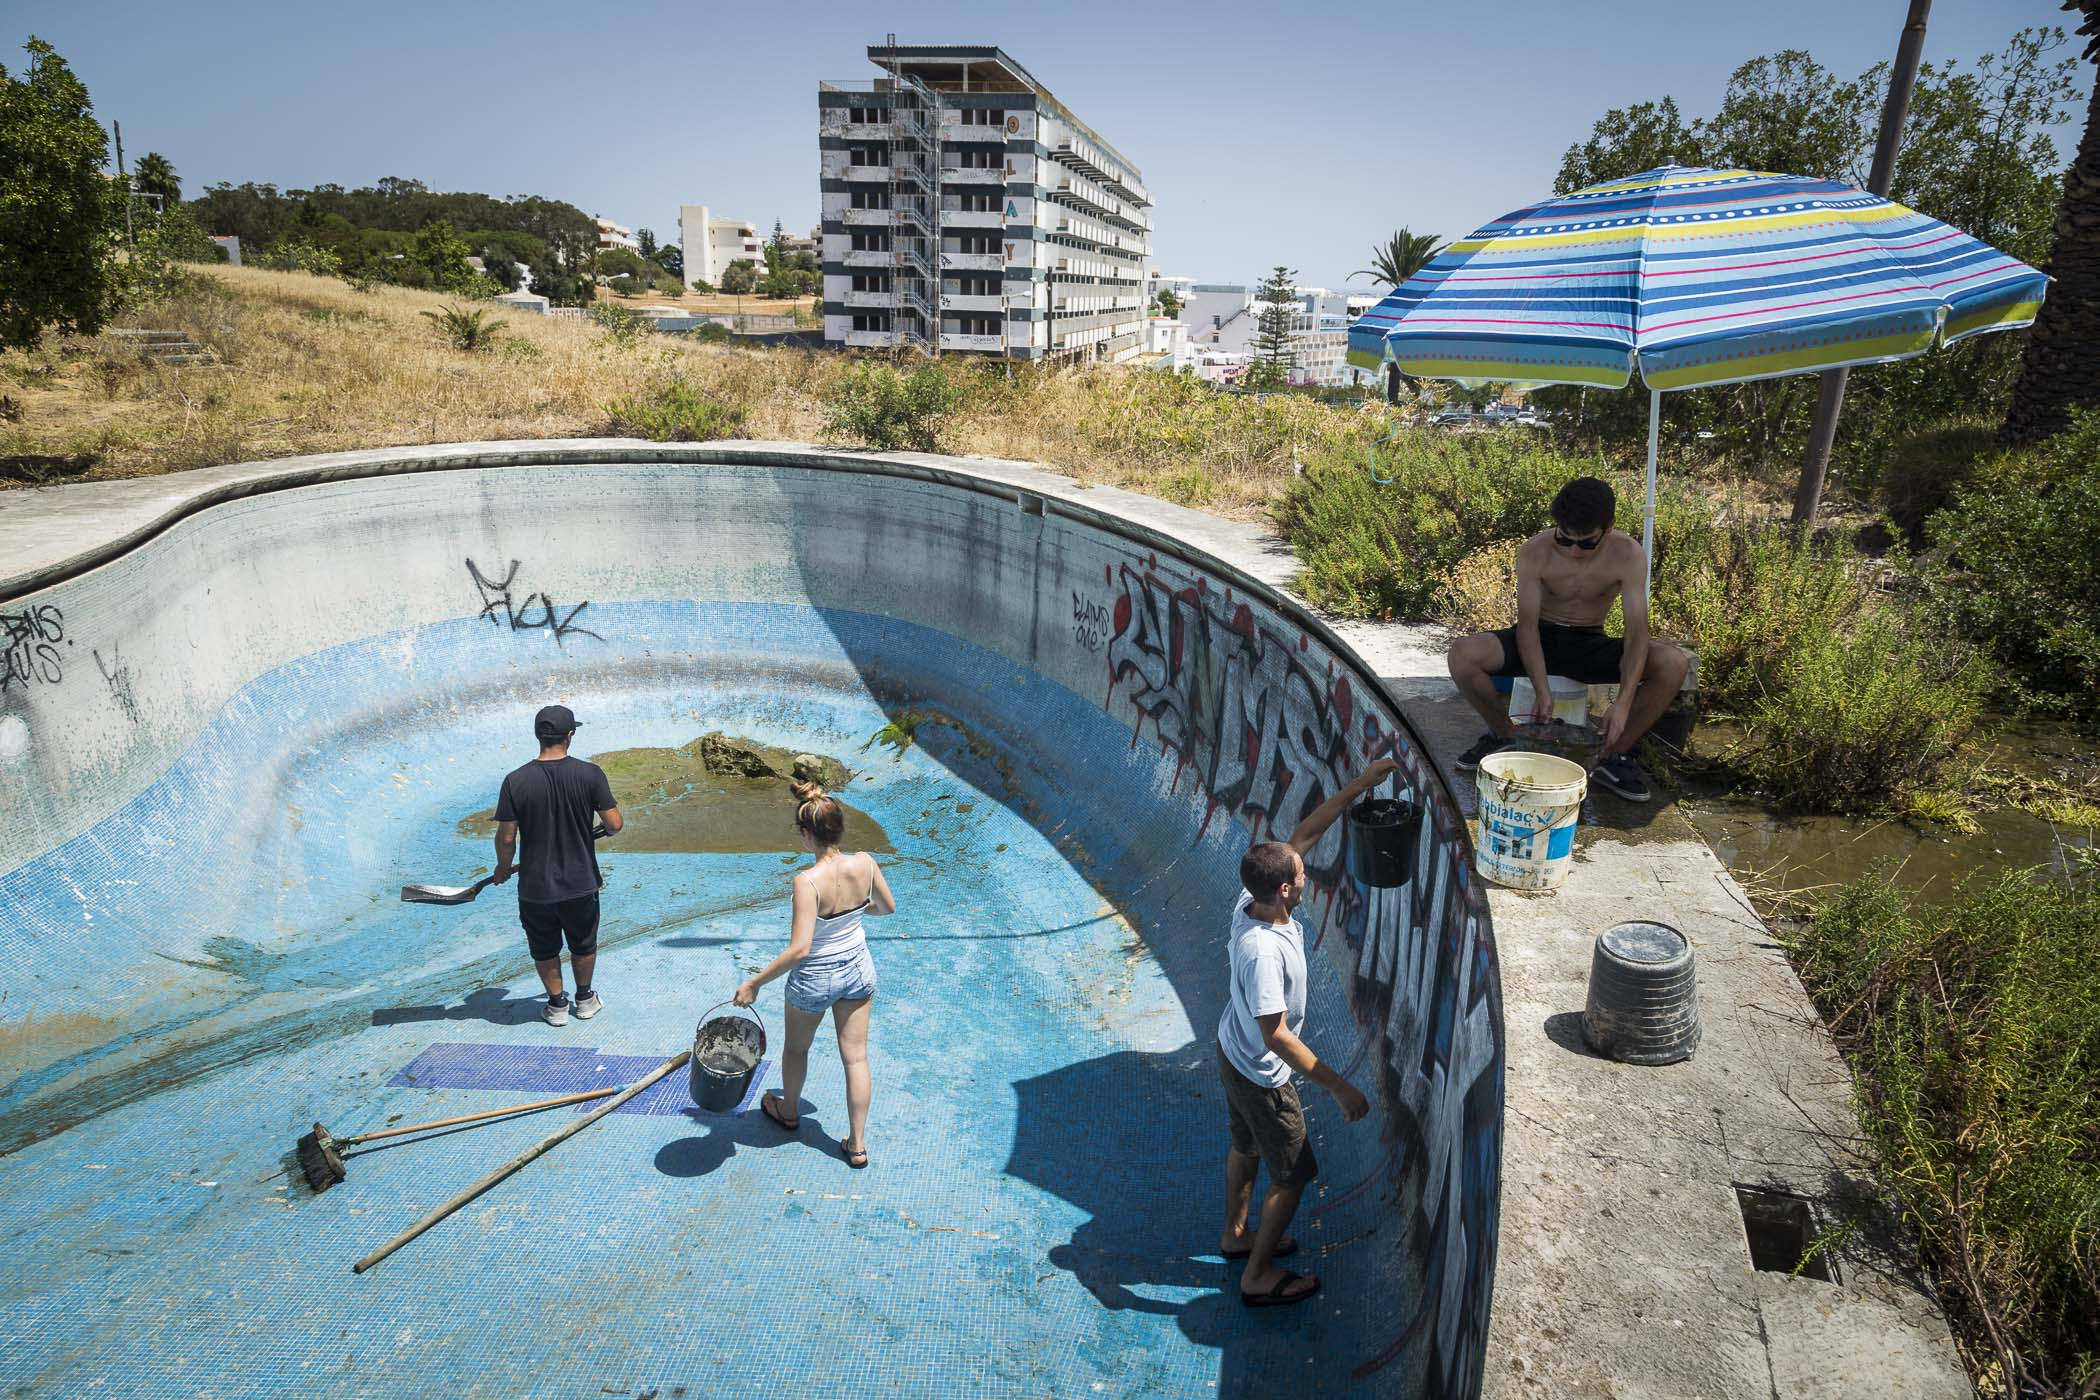 Portugal Pool Party Bmx Pool Riding With Joao Soar